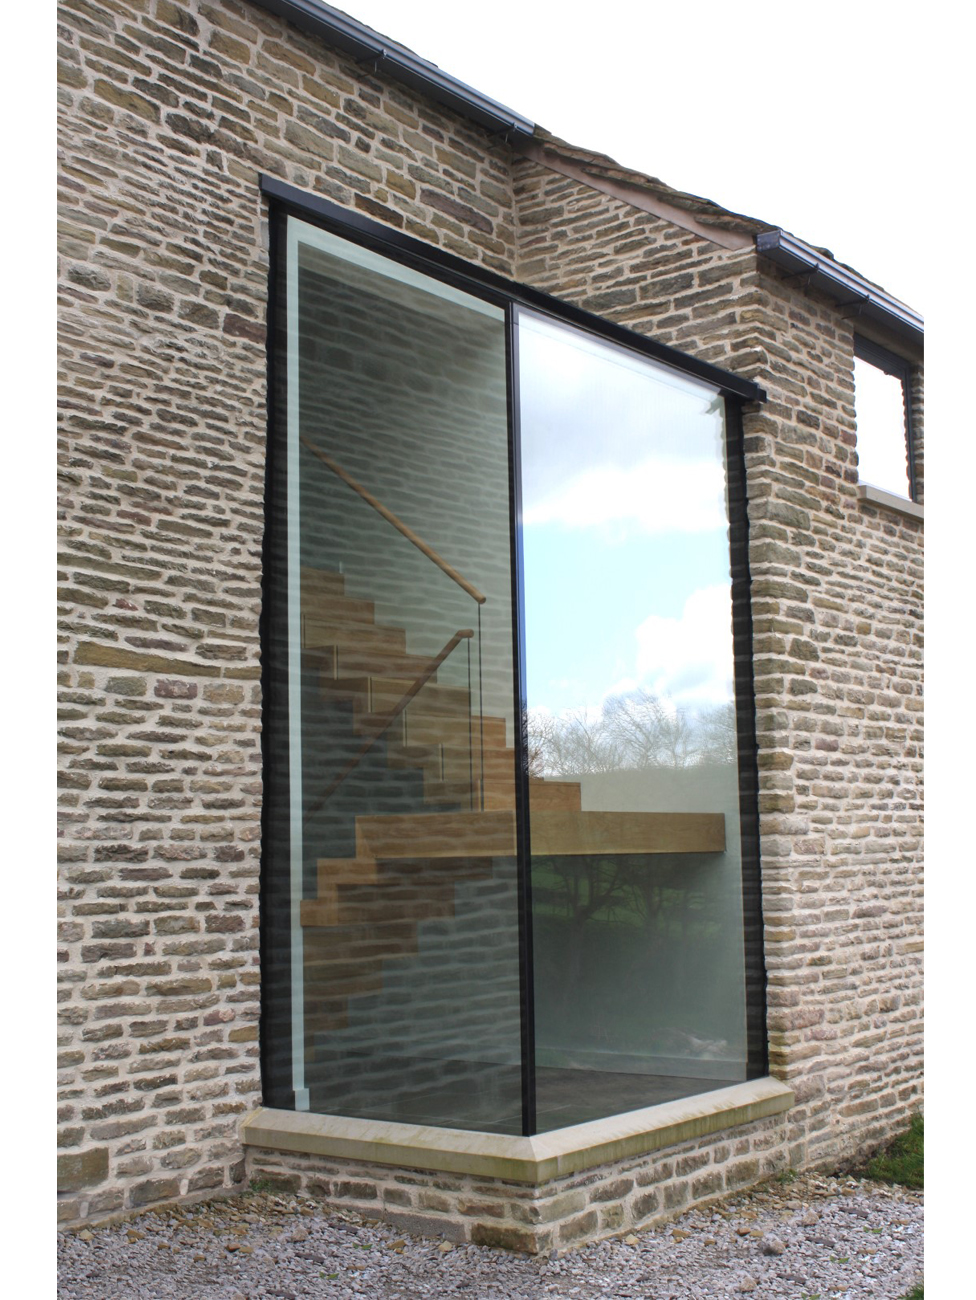 Structural glazing can be used to extend listed fabric